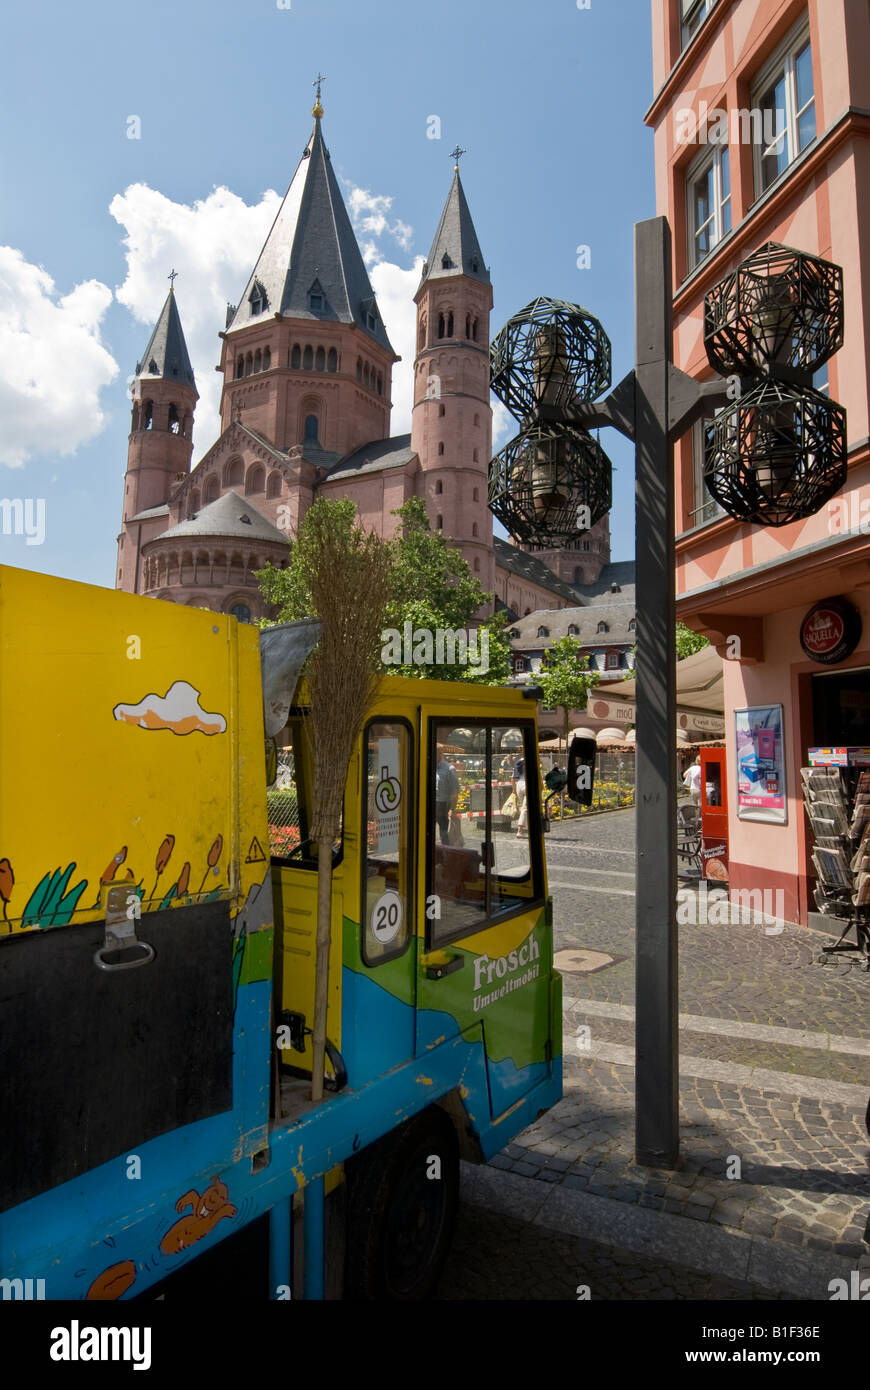 View across Liebfrauenplatz to the east side of the cathedral of Mainz in Germany - Stock Image